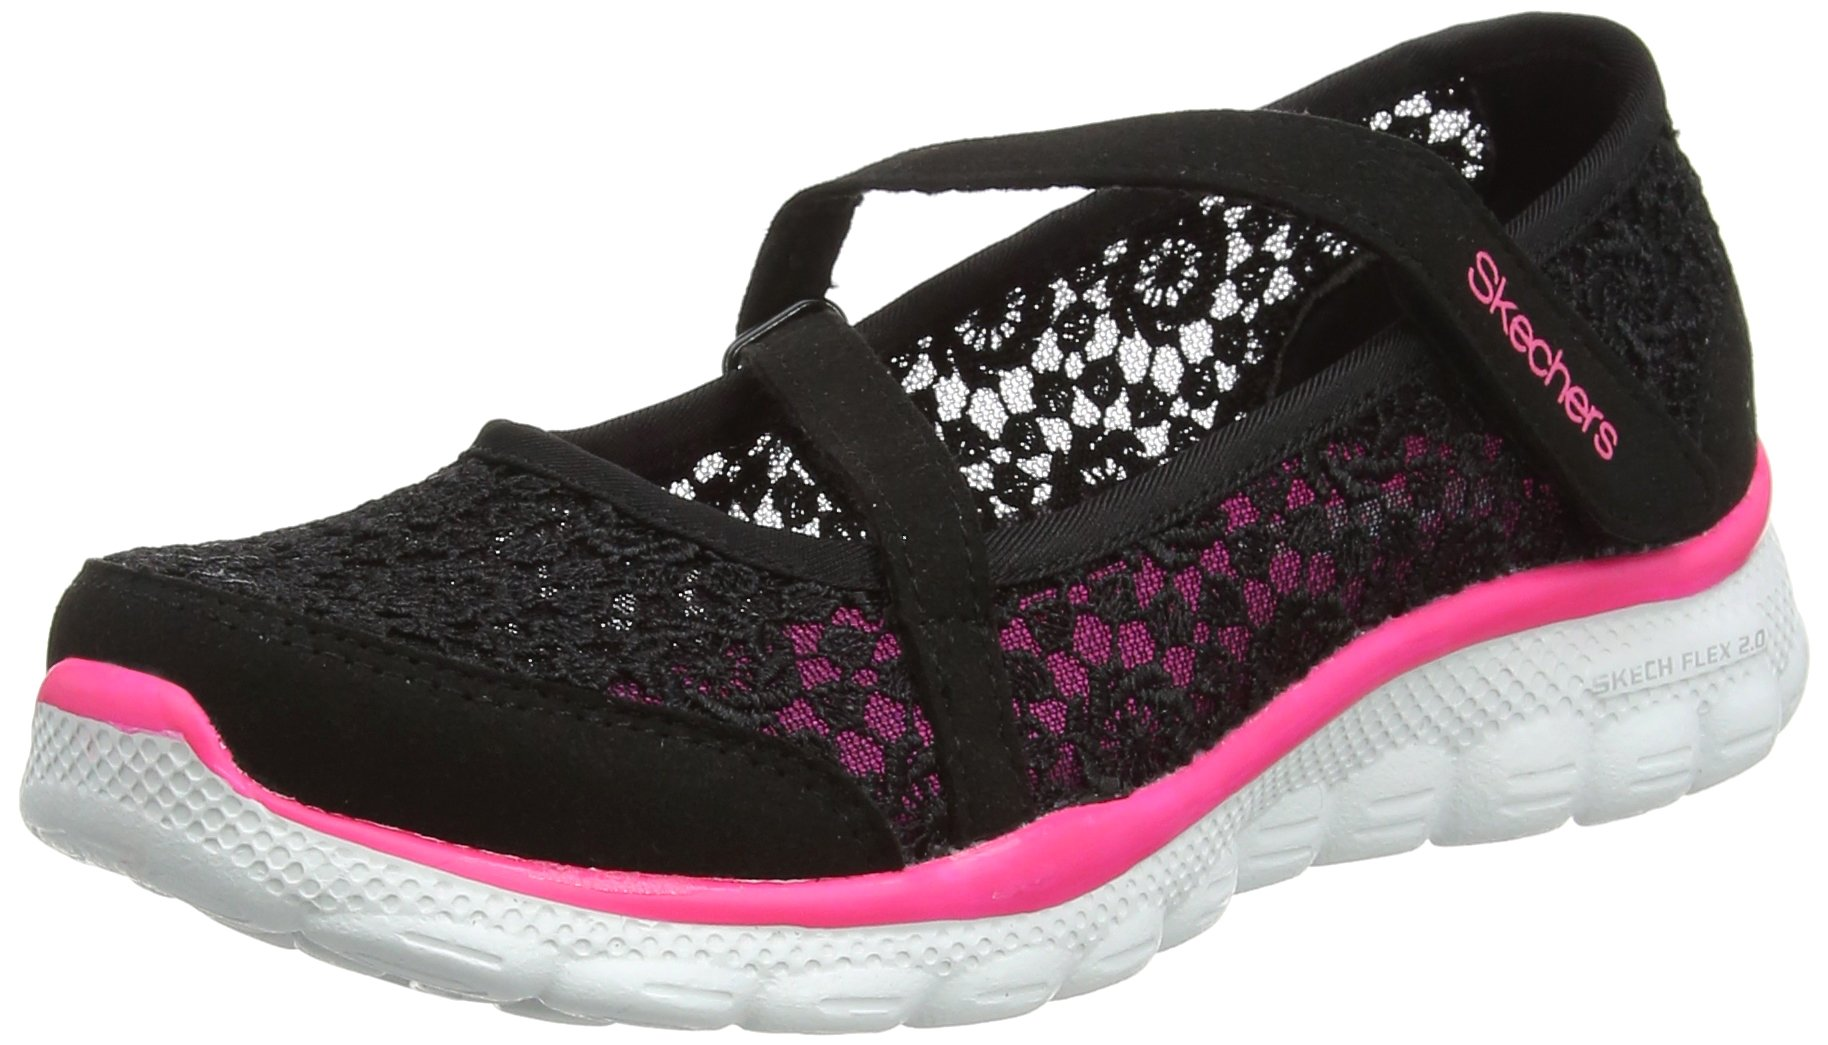 superficial Comida Dialecto  Skechers Girls' 85219l Mary Janes- Buy Online in Canada at Desertcart